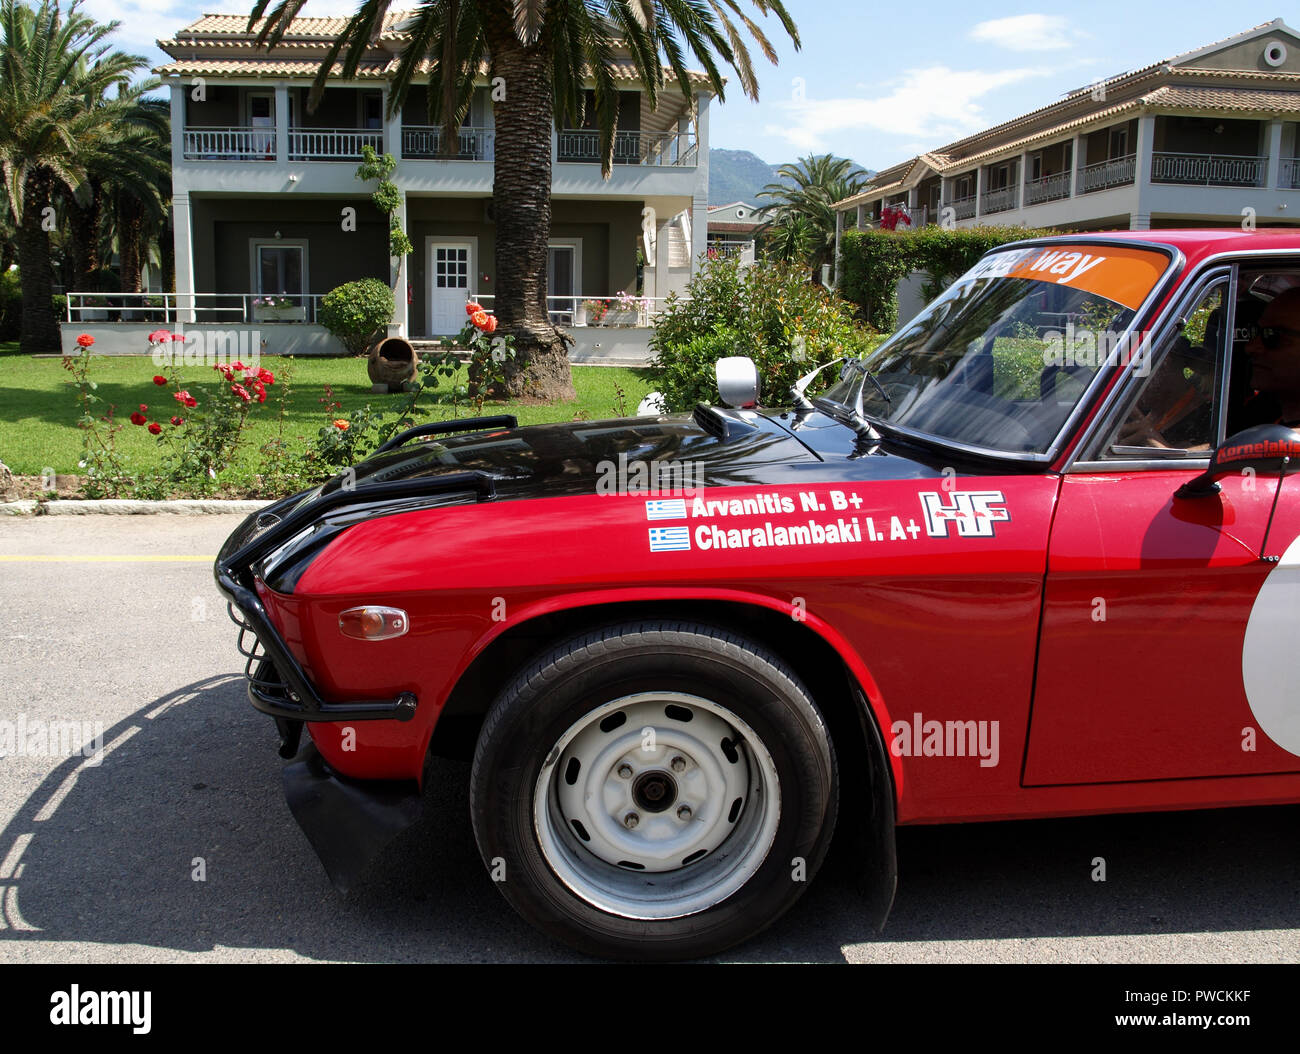 Vintage Lancia Fulvia on display at the 8th Hellenic Bulgarian LEKAM classic car rally at the Acharavi Park Hotel, Acharavi, Corfu, Greece - Stock Image